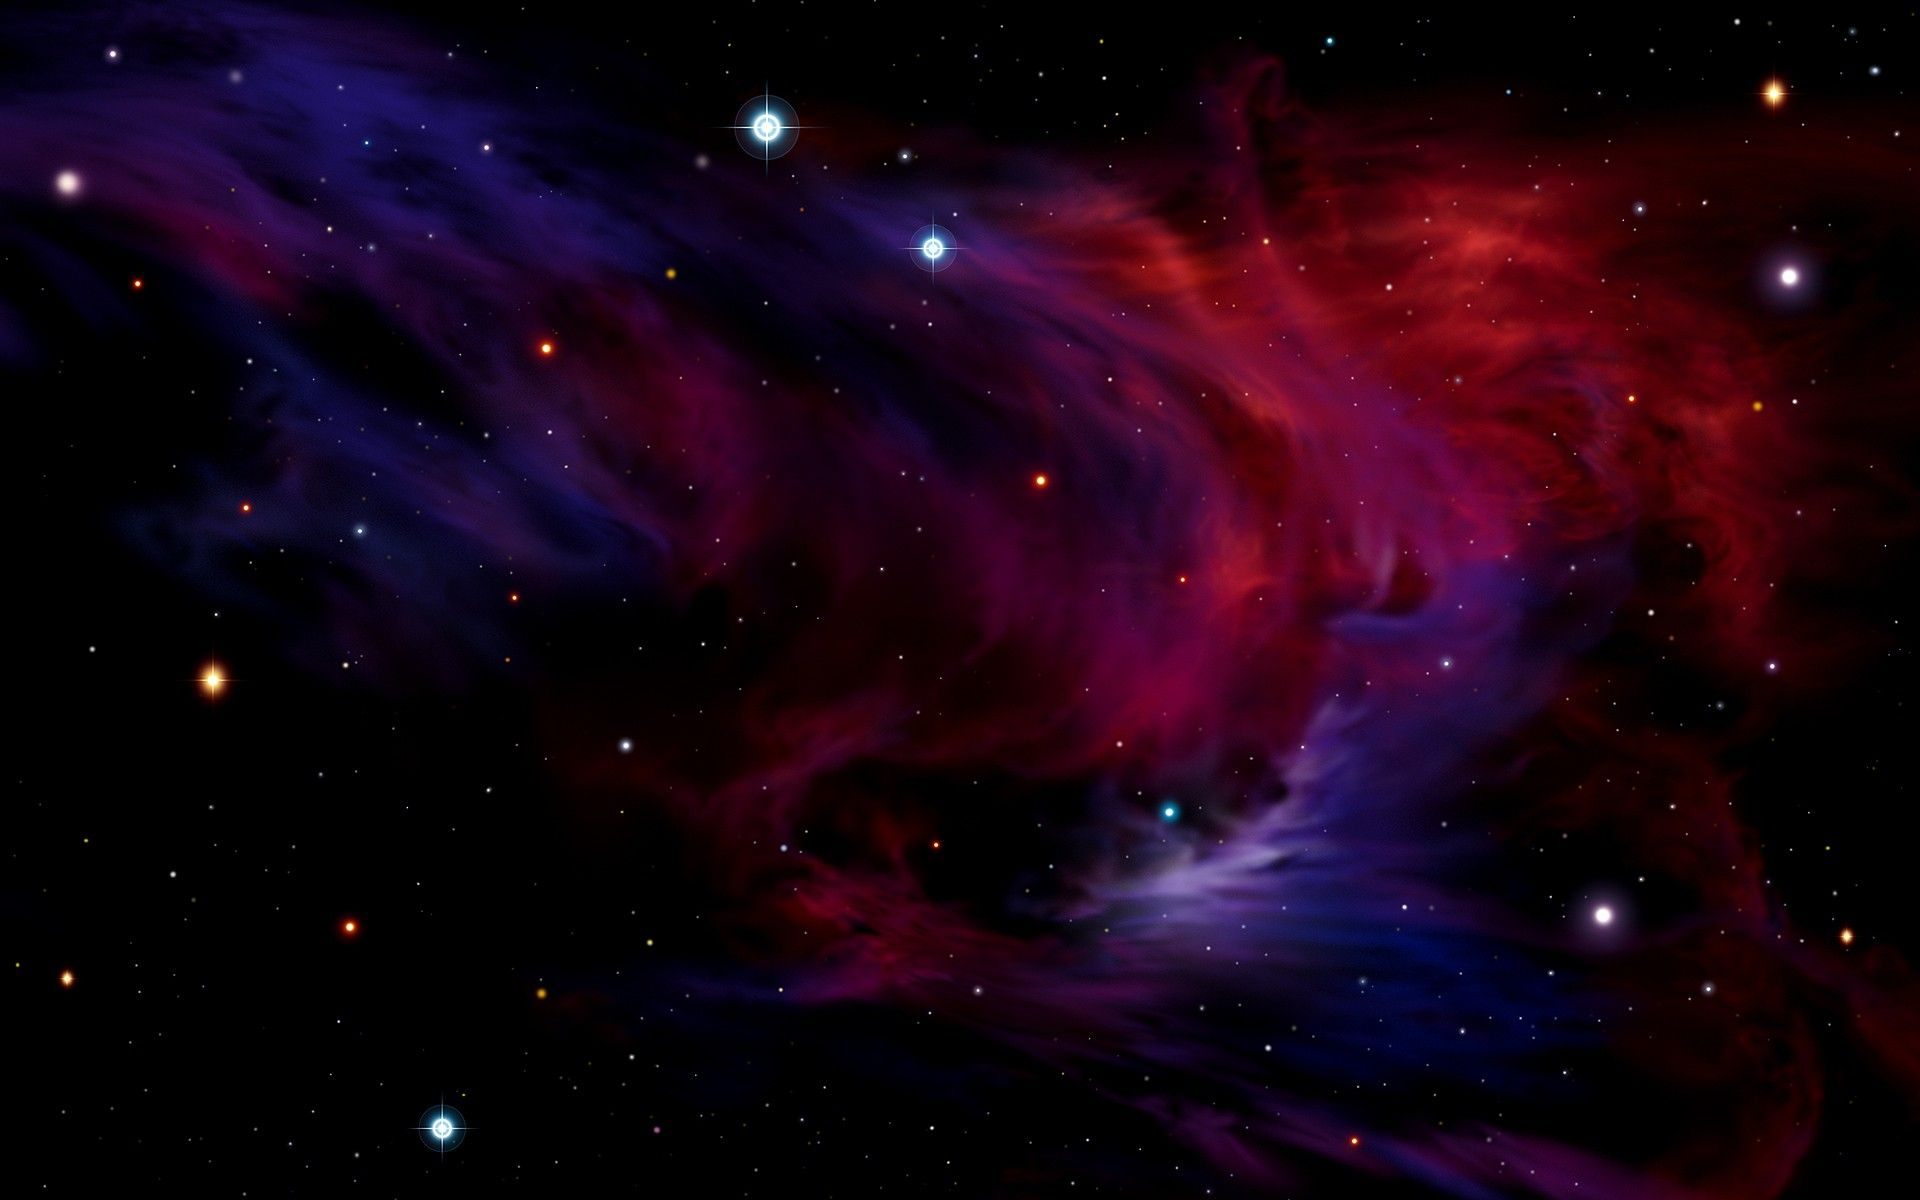 Space nebula hd wallpapers 1212 the final frontier - Final space wallpaper ...